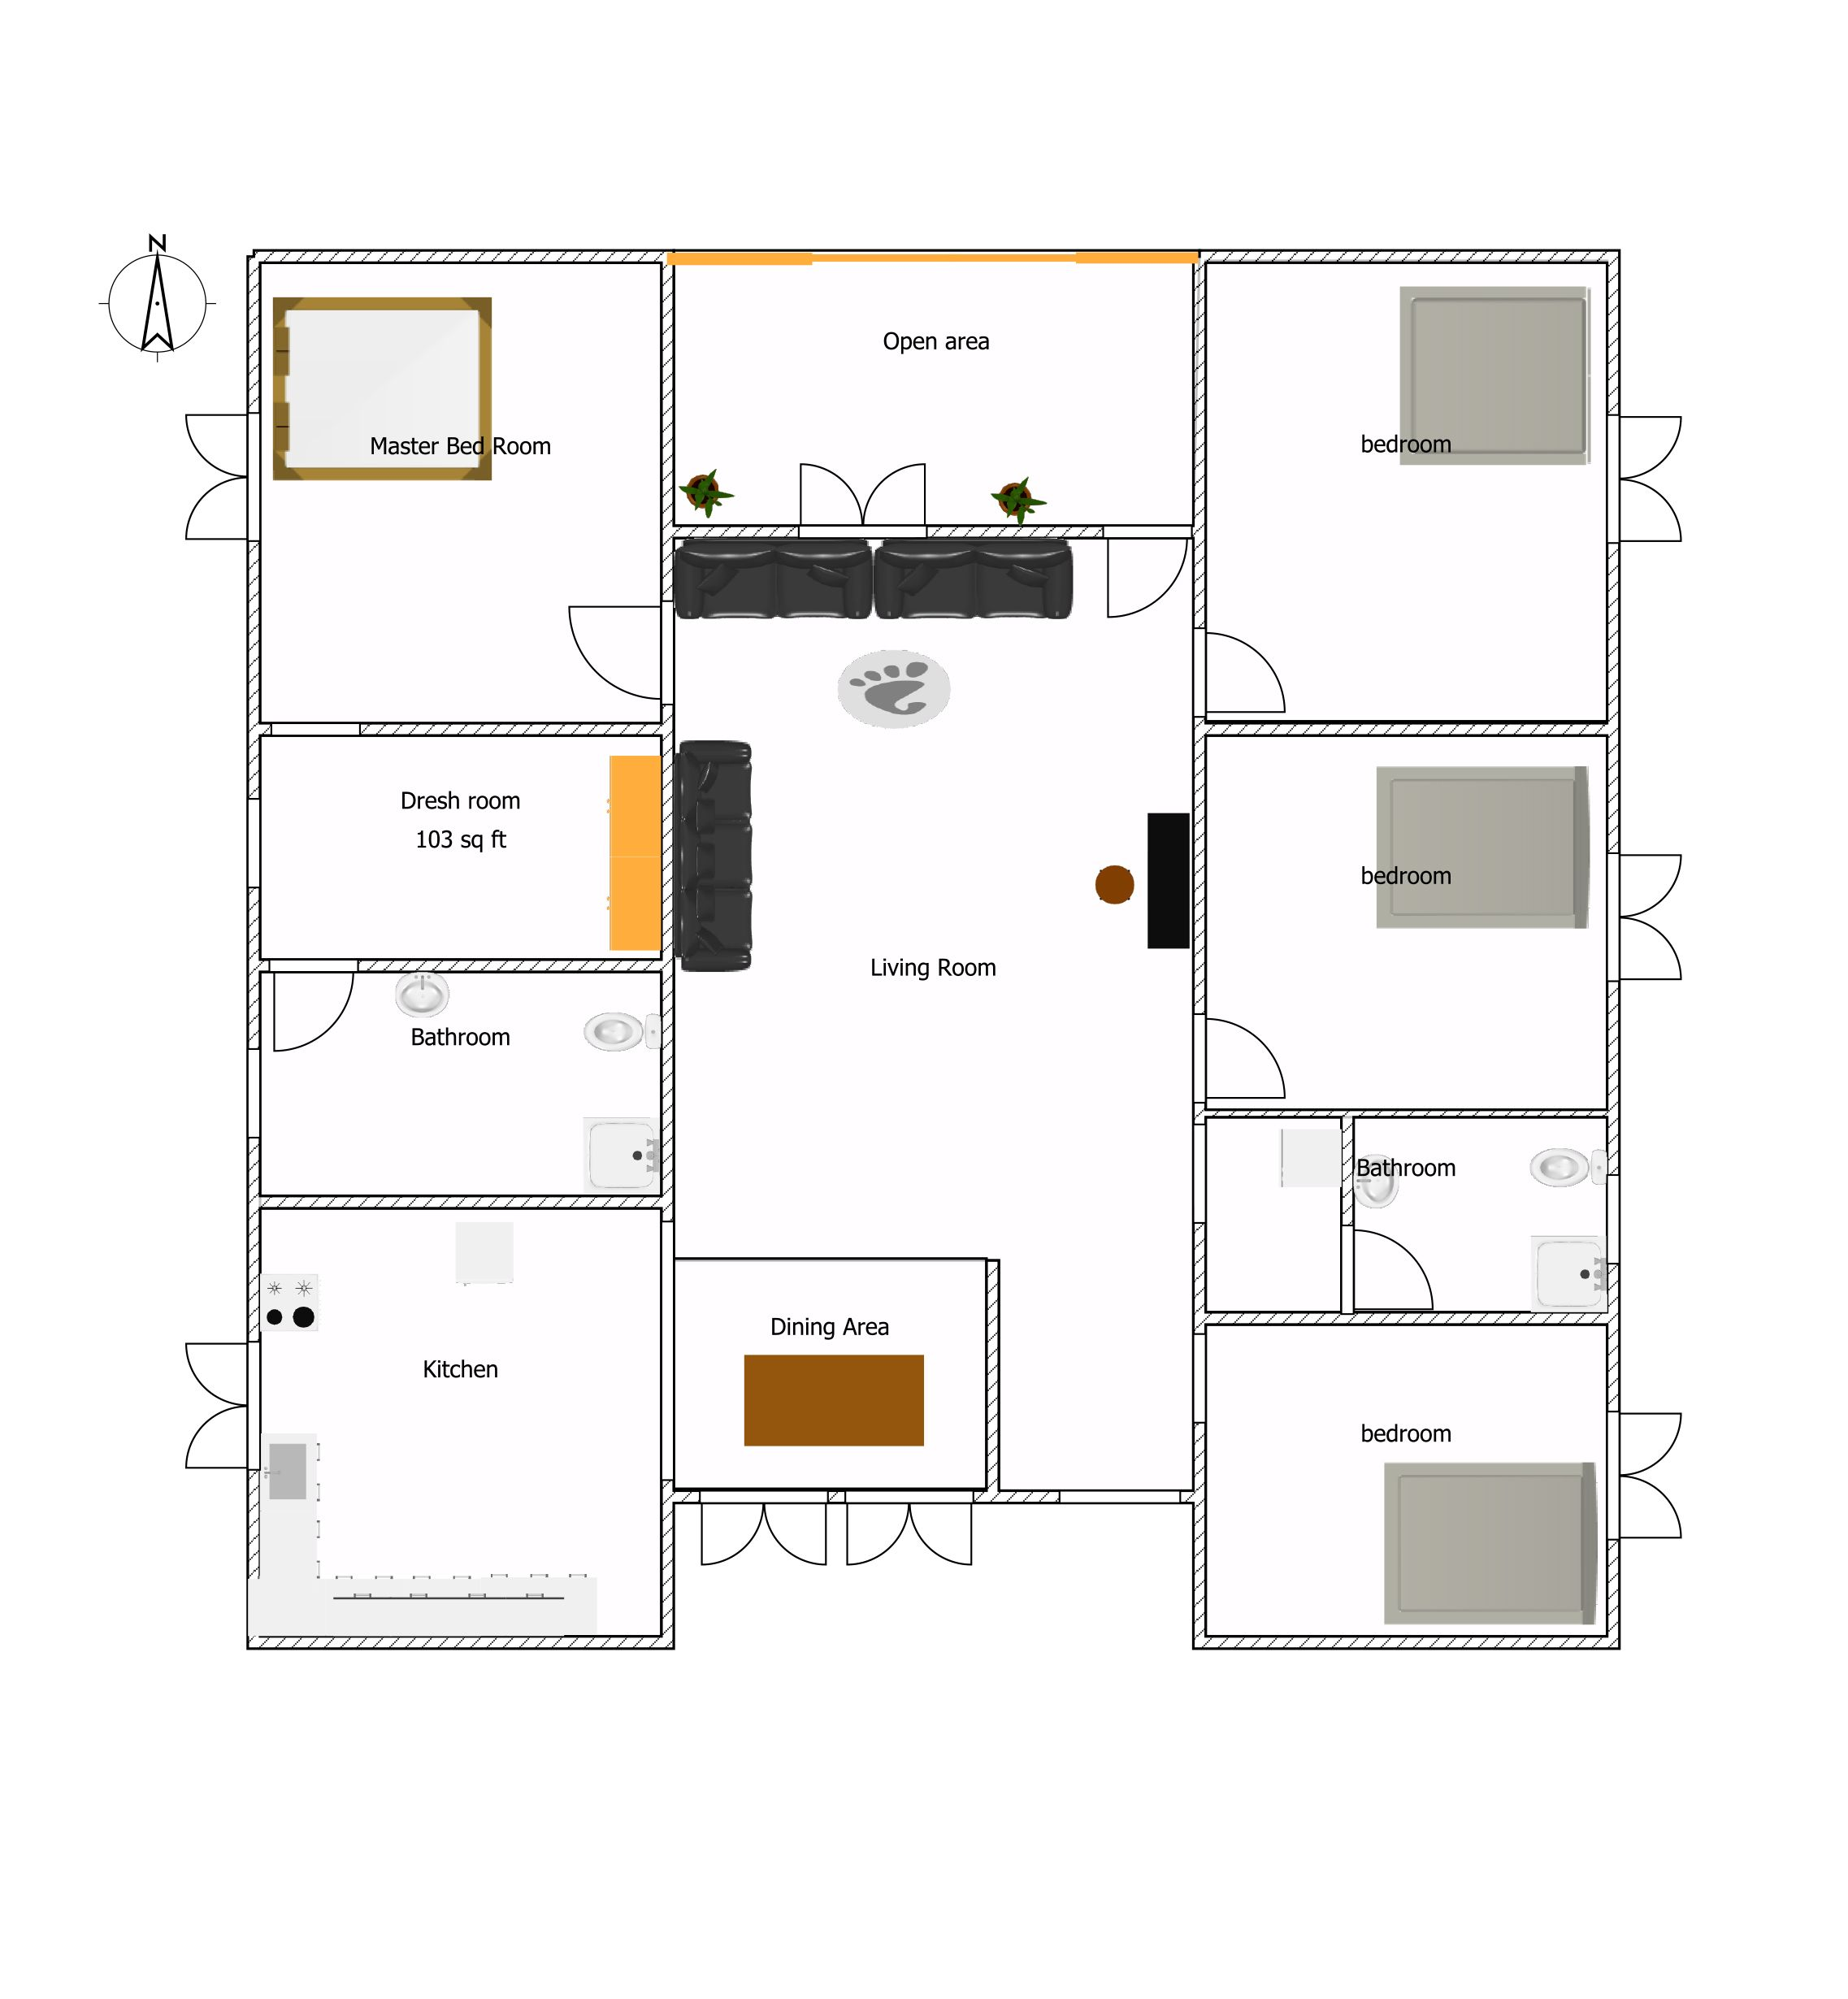 Icymi room house plan pictures  also bhk design images pathologyandhistology pinterest rh in